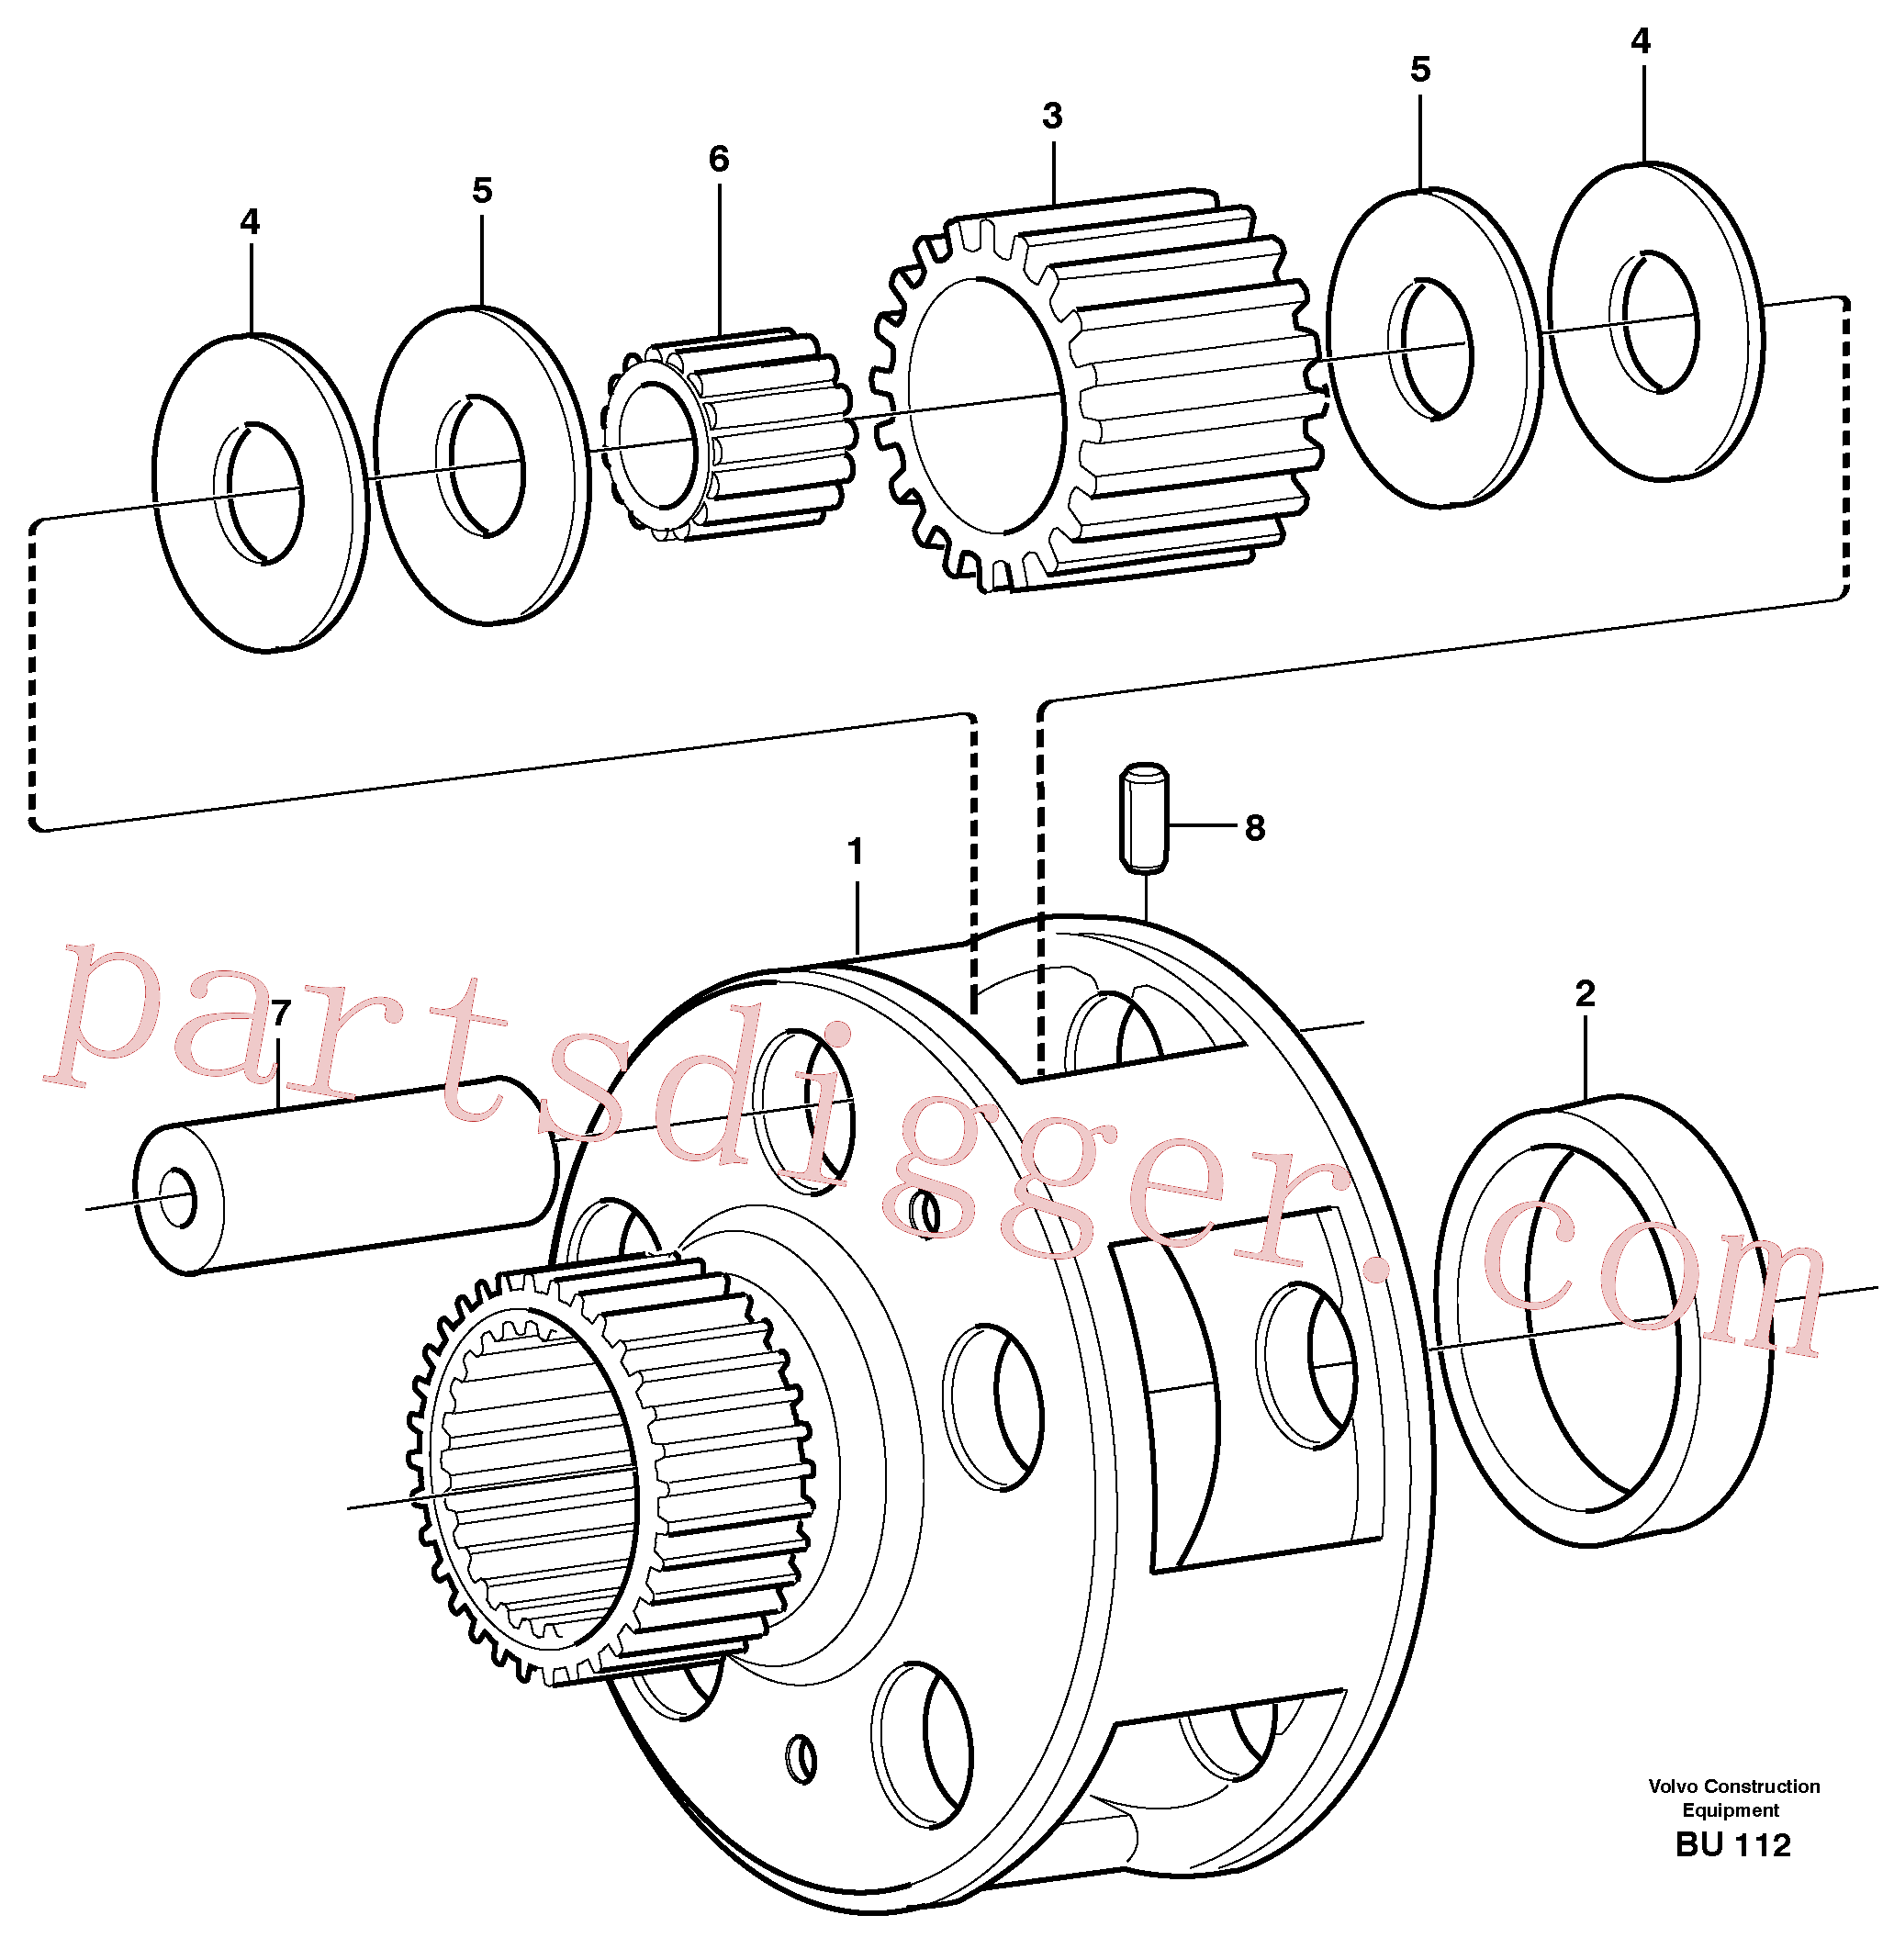 VOE1650200 for Volvo Planet kit, stage 4(BU112 assembly)